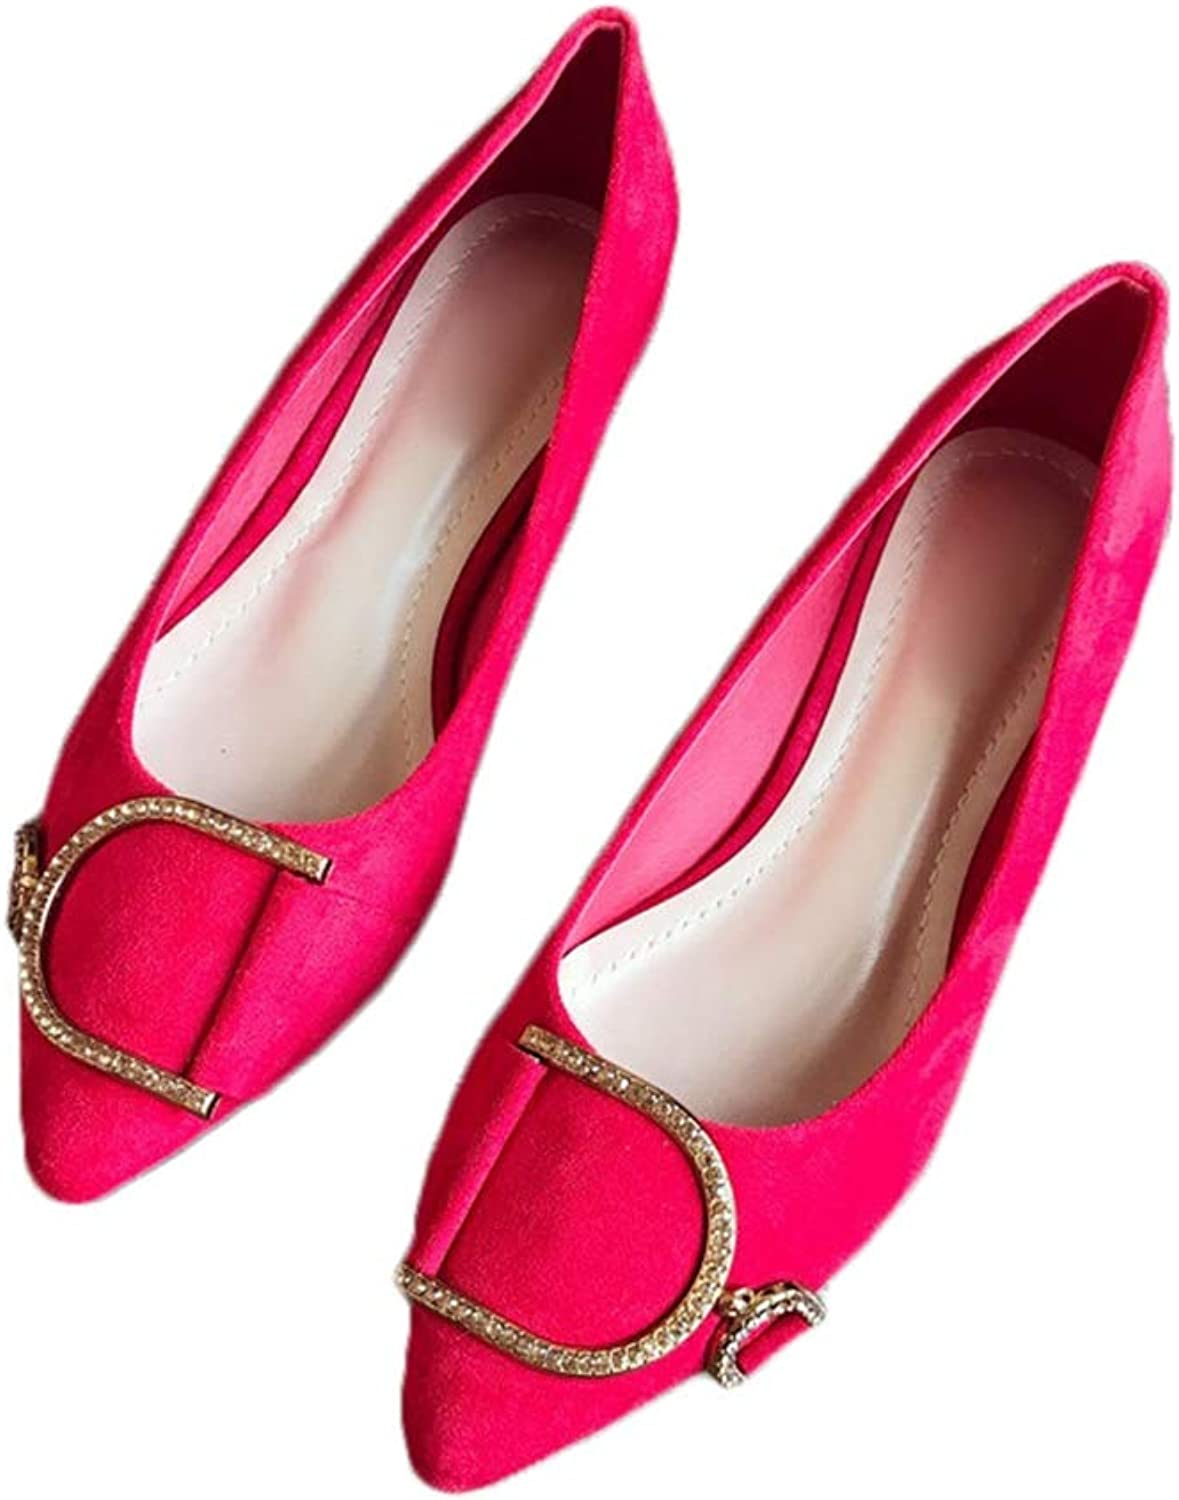 August Jim Womens Flats shoes,Slip-on Pointed Toe Fax Suede Fashion Wild Ballet shoes